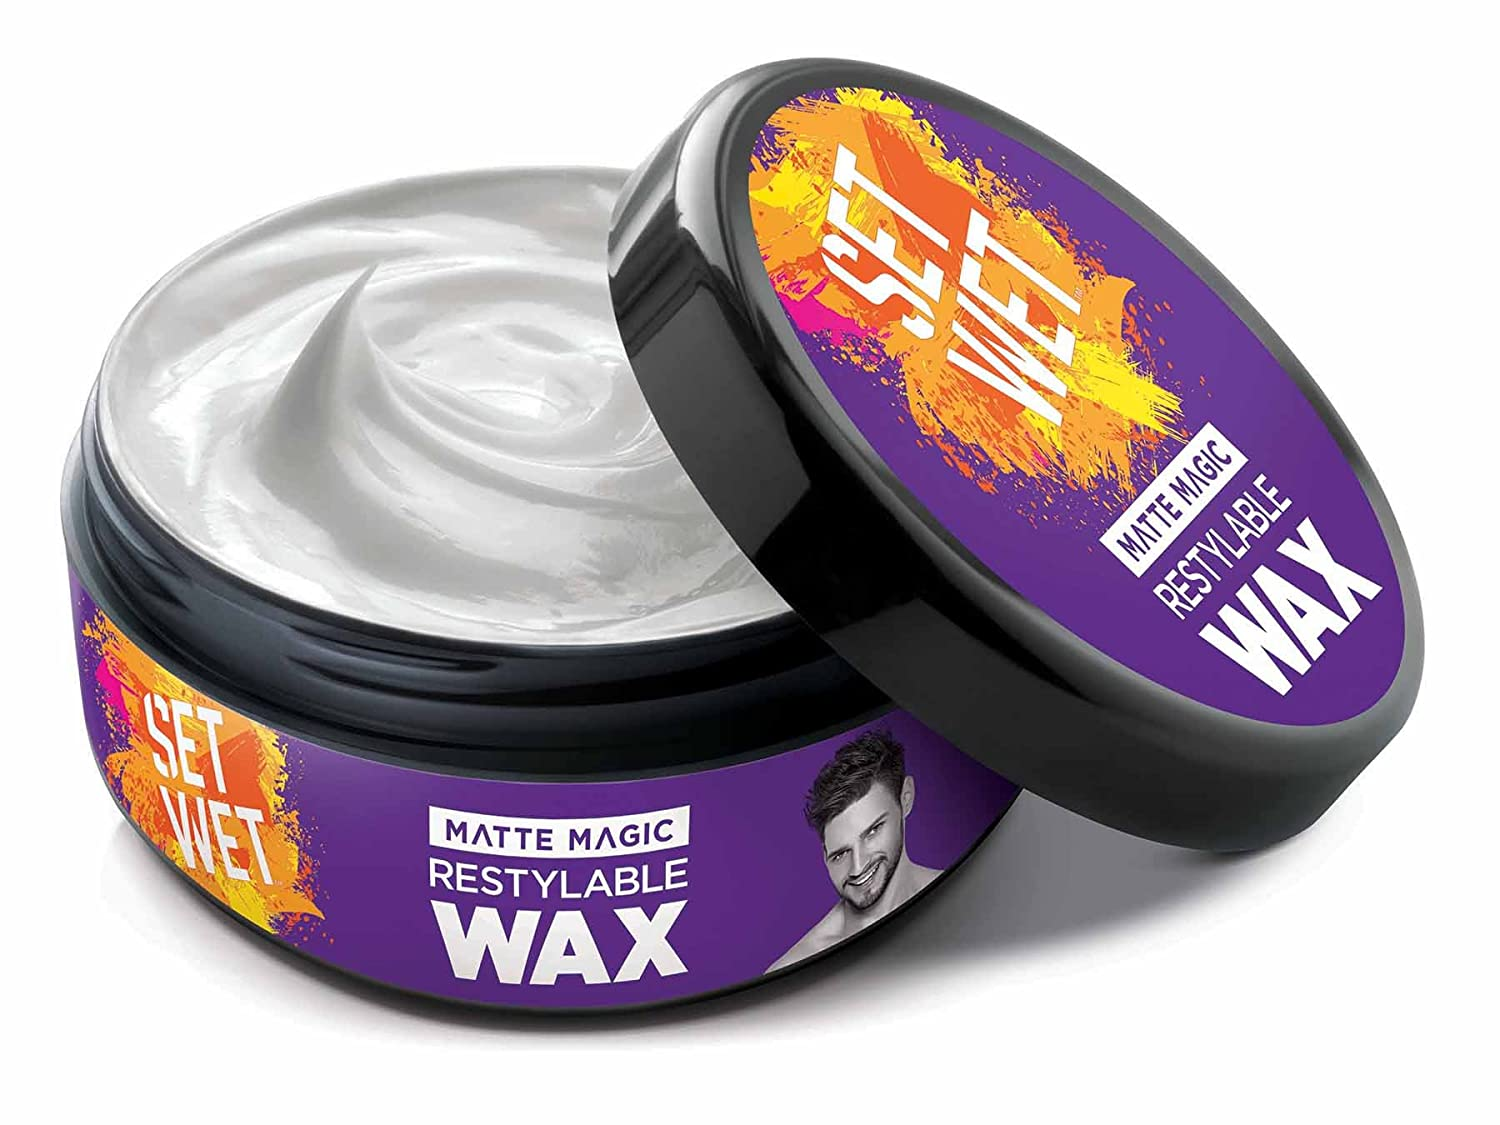 Buy Set Wet Hair Wax Matte Magic 75g Online At Low Prices In India